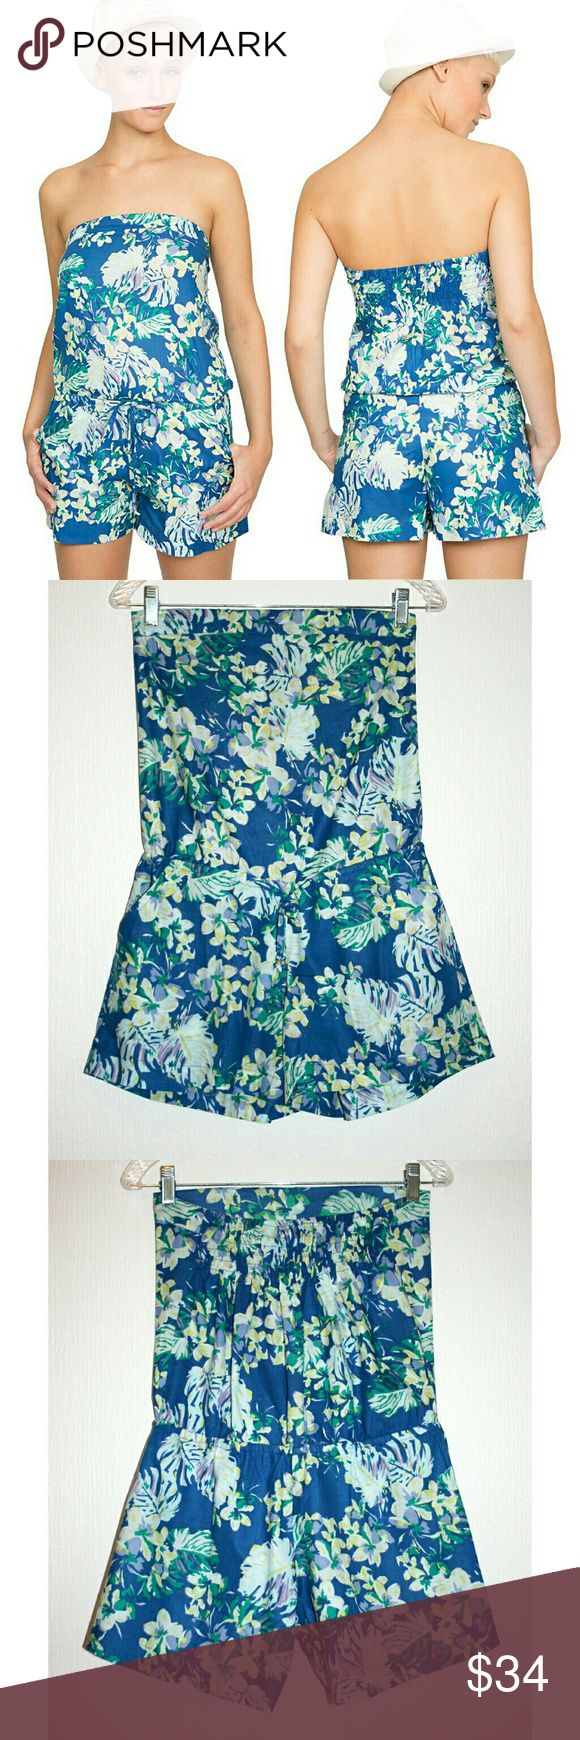 Floral & Fern Tropical Print Bandeau Playsuit NWT This tropical playsuit / romper is so stylish, cute and bright! It features an adjustable tie to cinch the waist, a bandeau neckline and pockets on the hips. The tie stings have silver metal detail on the ends. The back has a stretchy smocked/sheared panel to keep it fitted to the bust and held up nicely. The comfortable and lightweight fabric is 100% cotton, and should be washed to soften. I'm happy to provide measurements upon request…